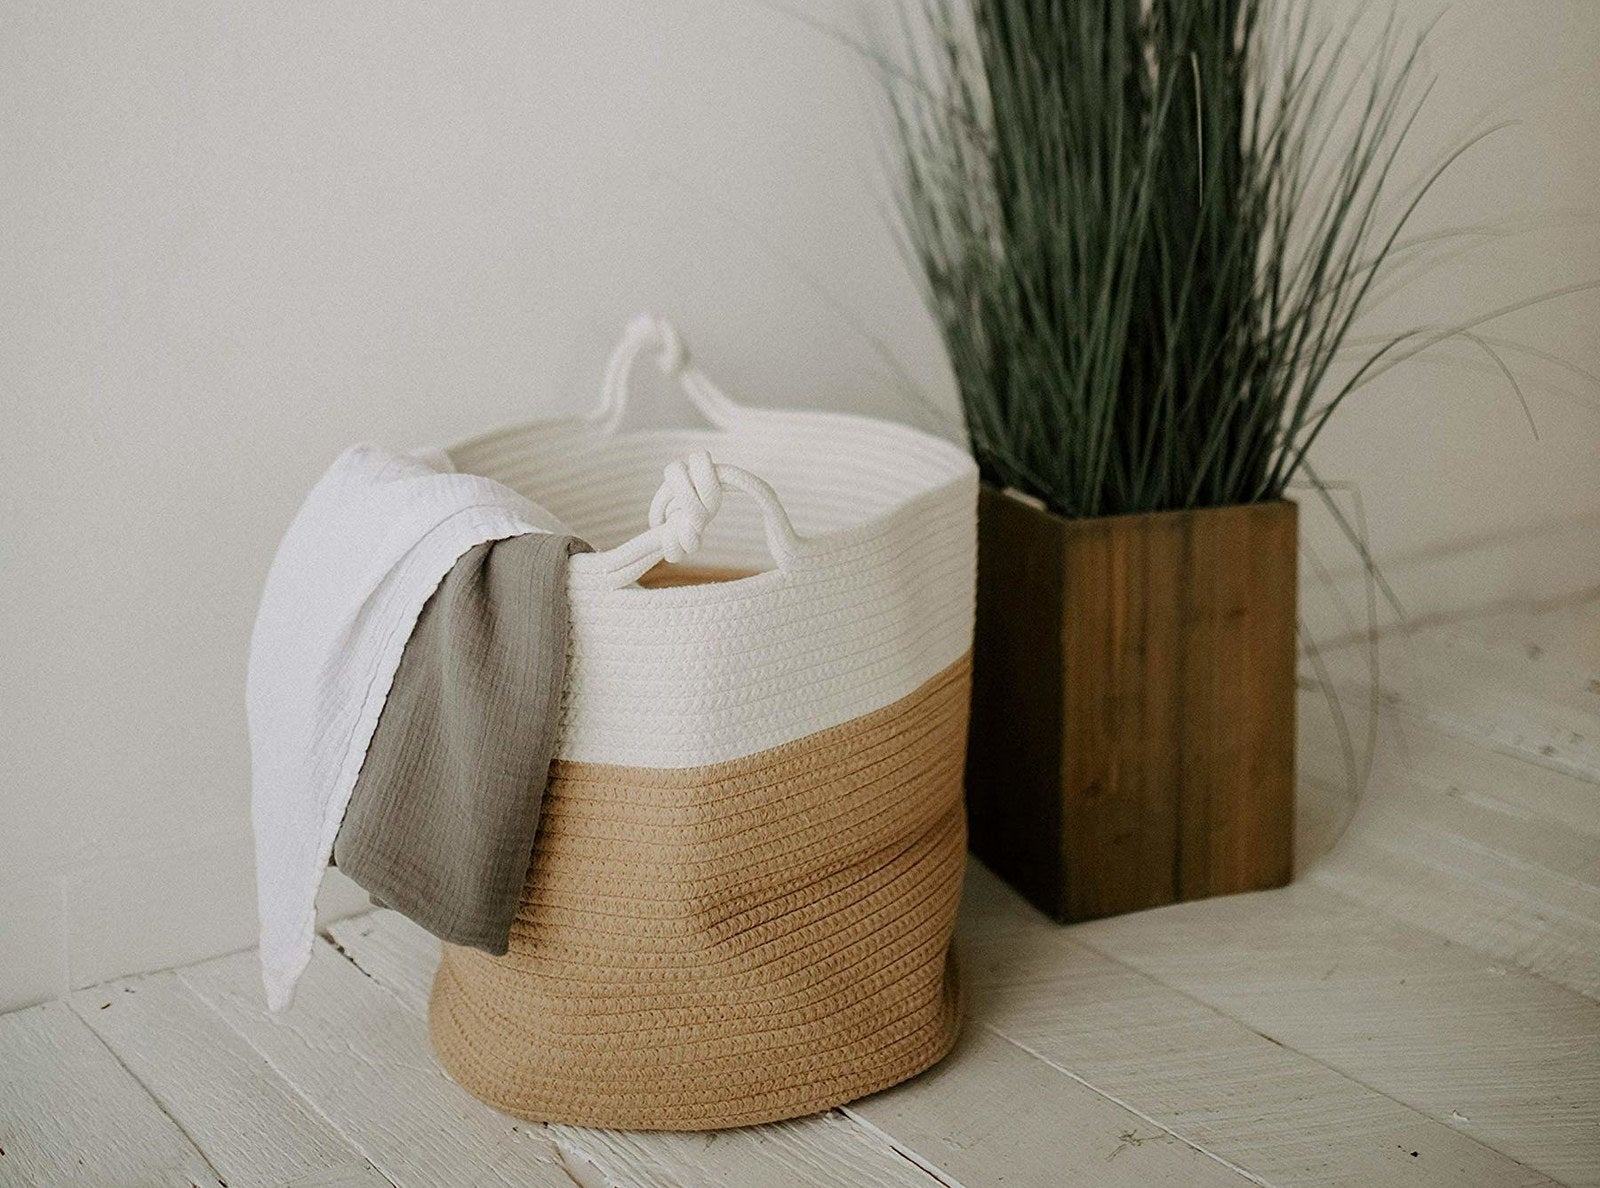 a woven two-tone basket filled with a blanket